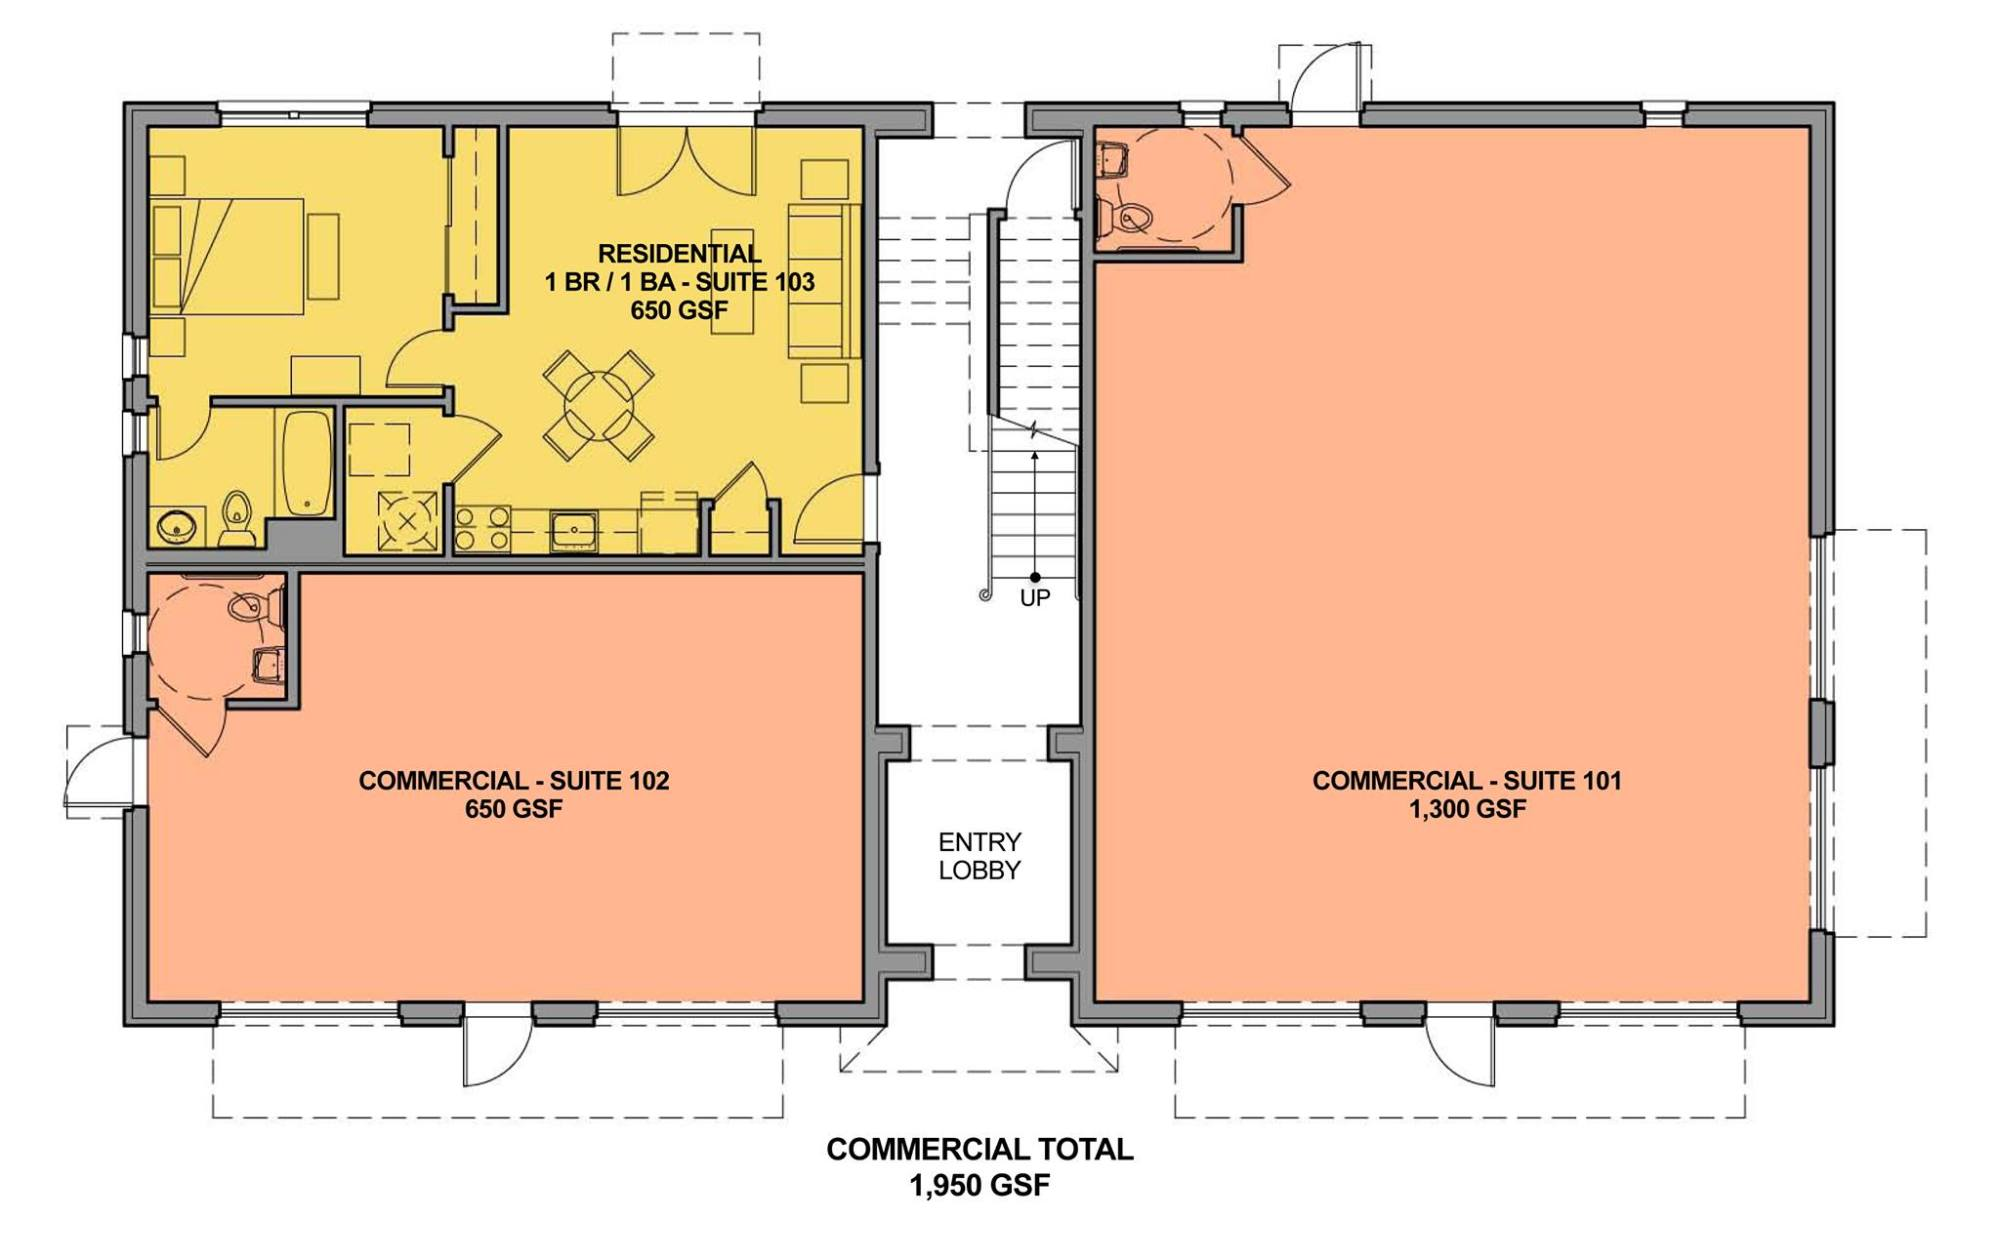 hight resolution of ground floor with one accessible unit to take care of the fair housing act requirement for